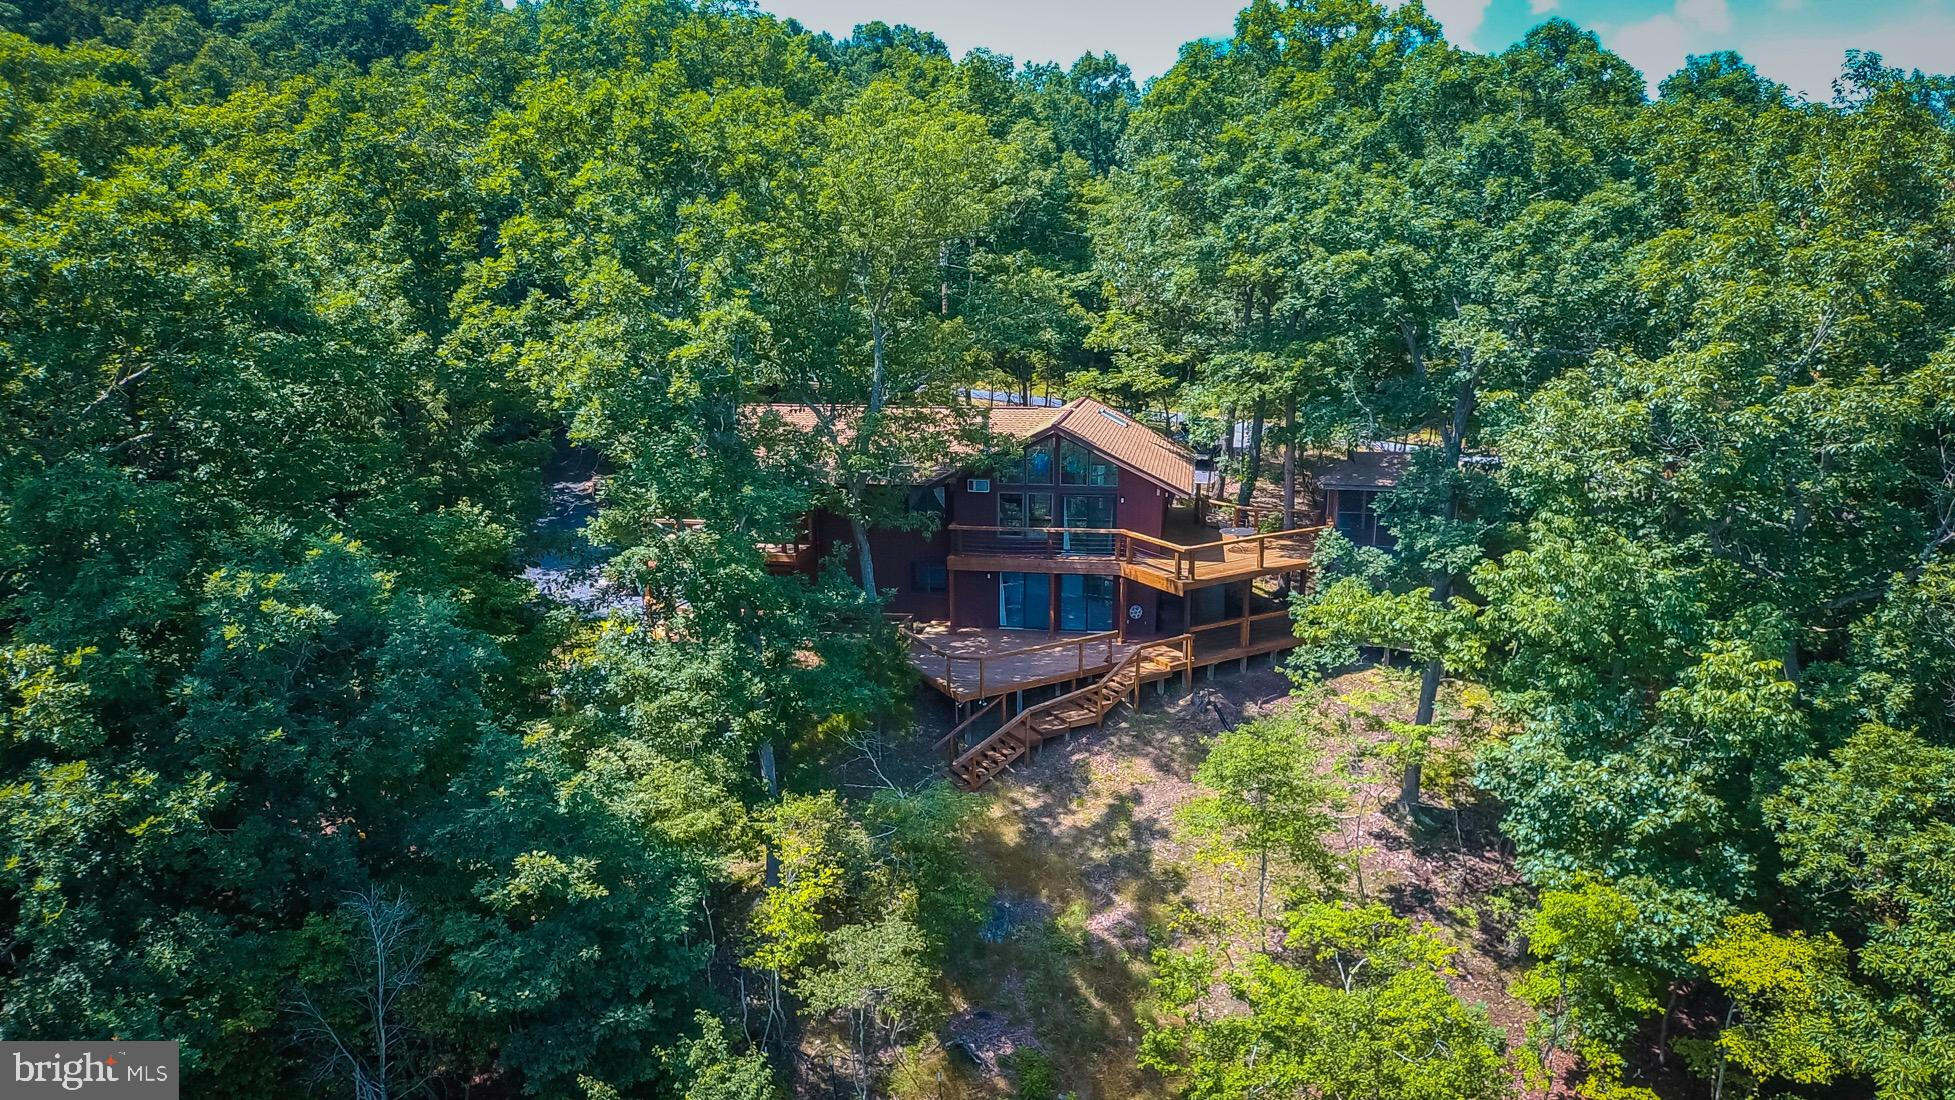 857 PIONEER TRAIL, GREAT CACAPON, WV 25422